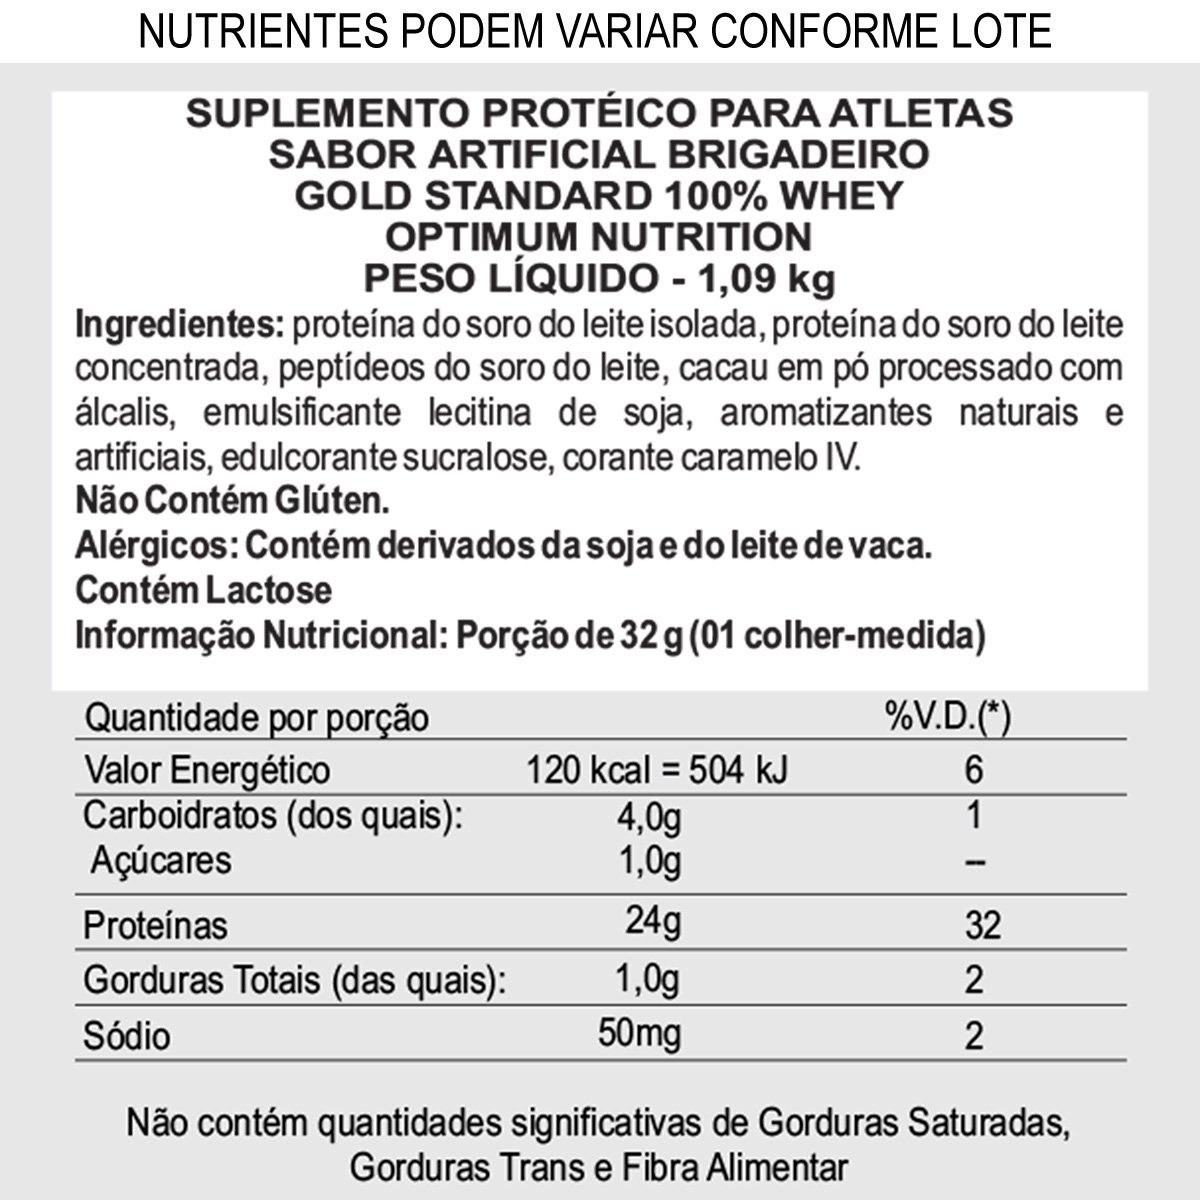 Whey Protein 100% Whey Gold Standard 20% More FREE 1.09kg - Optimum Nutrition - 1